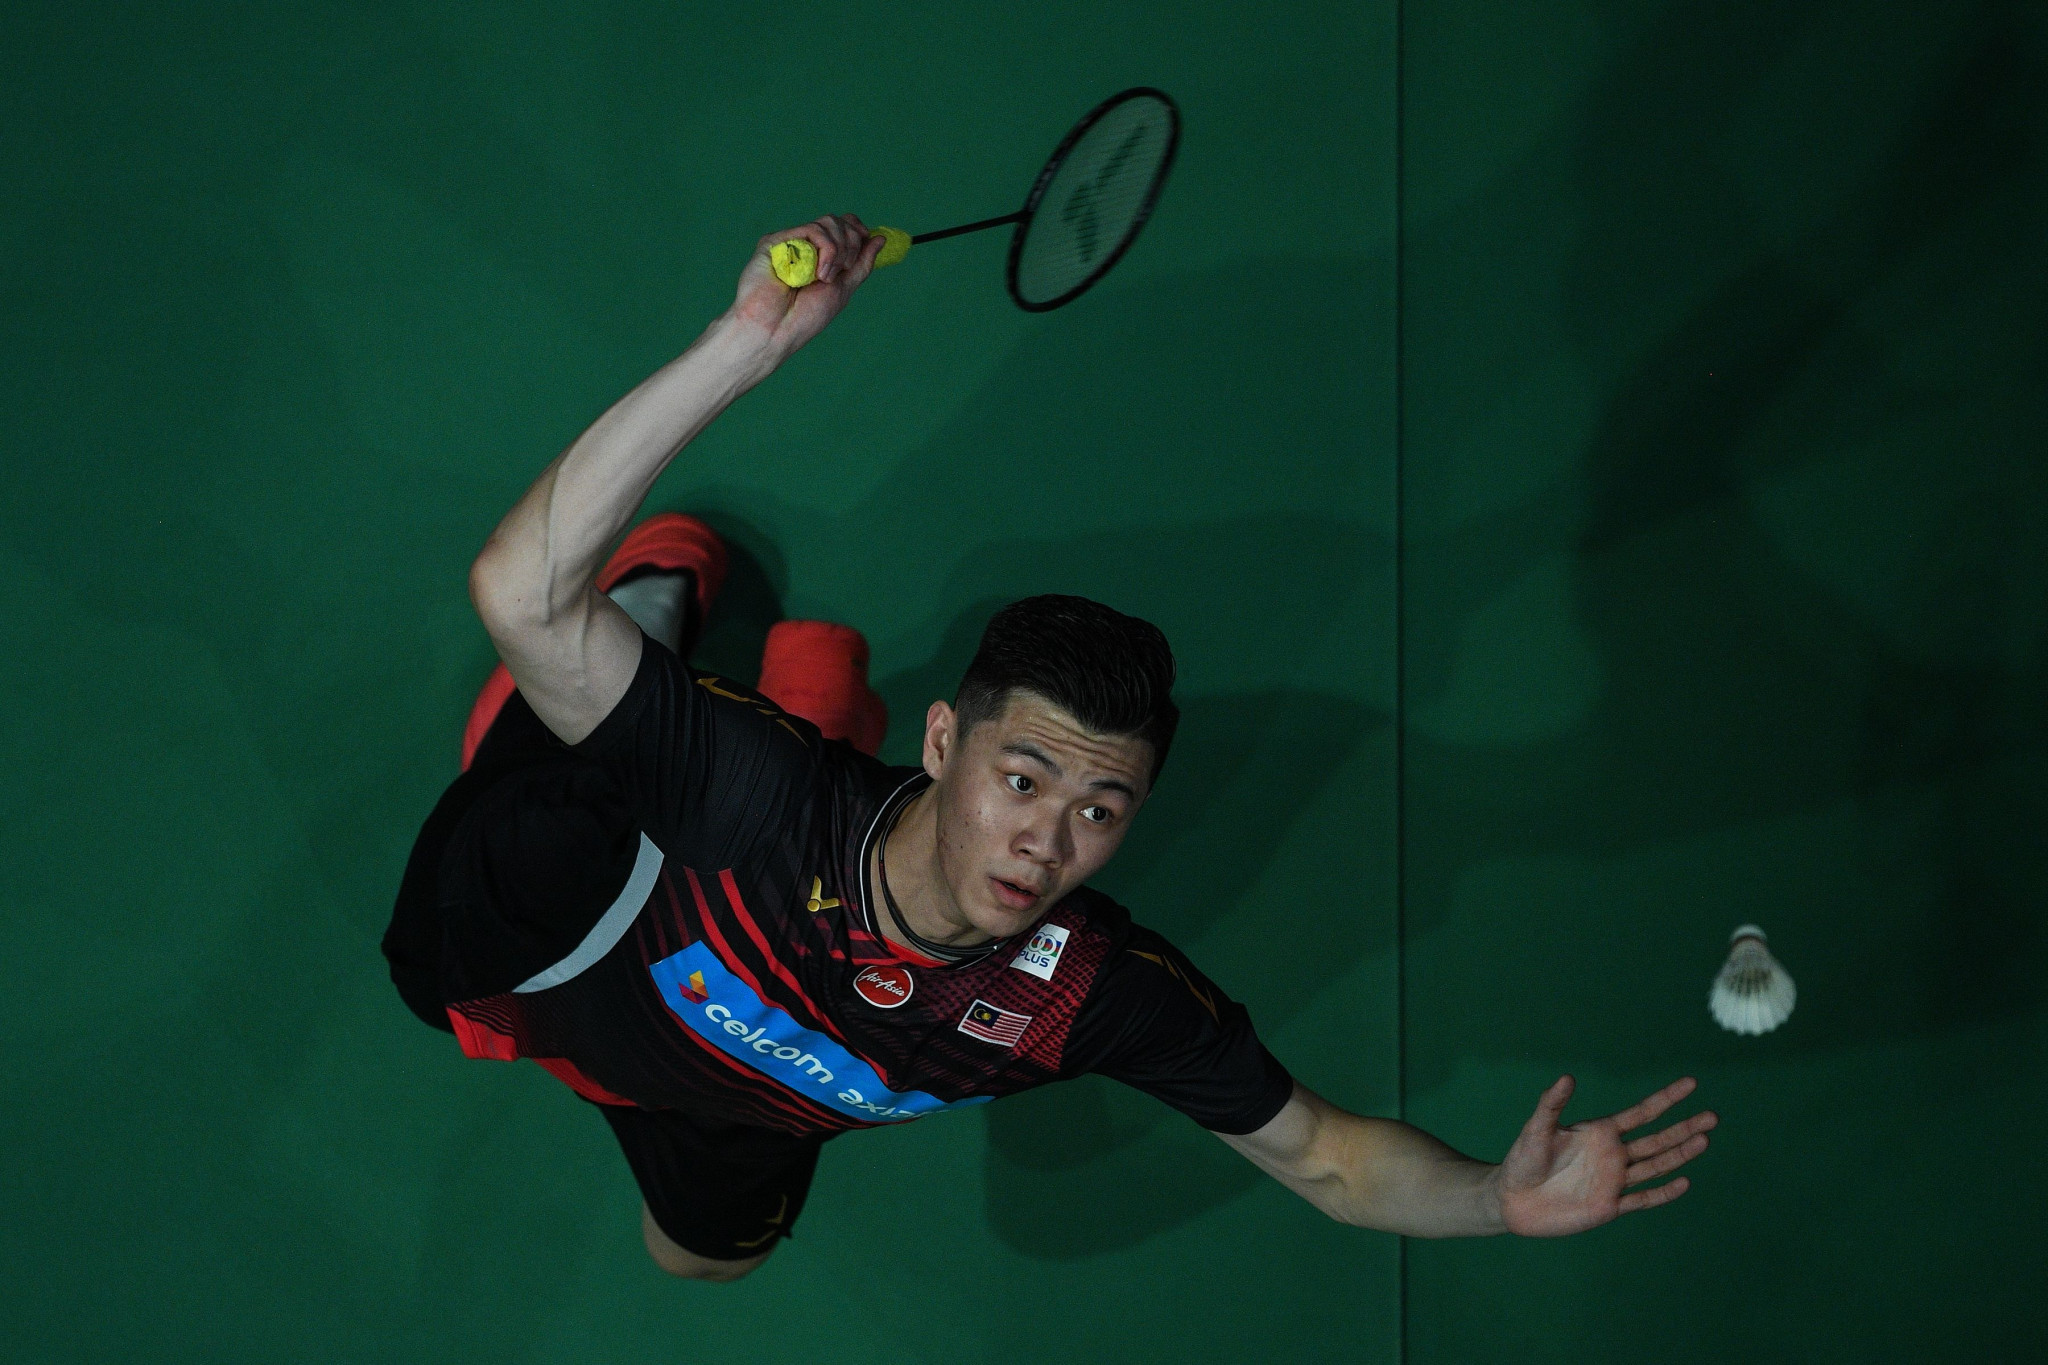 Malaysia's Lee Zii Jia is out to make an impression at the All England Open Badminton Championships in Birmingham ©Getty Images